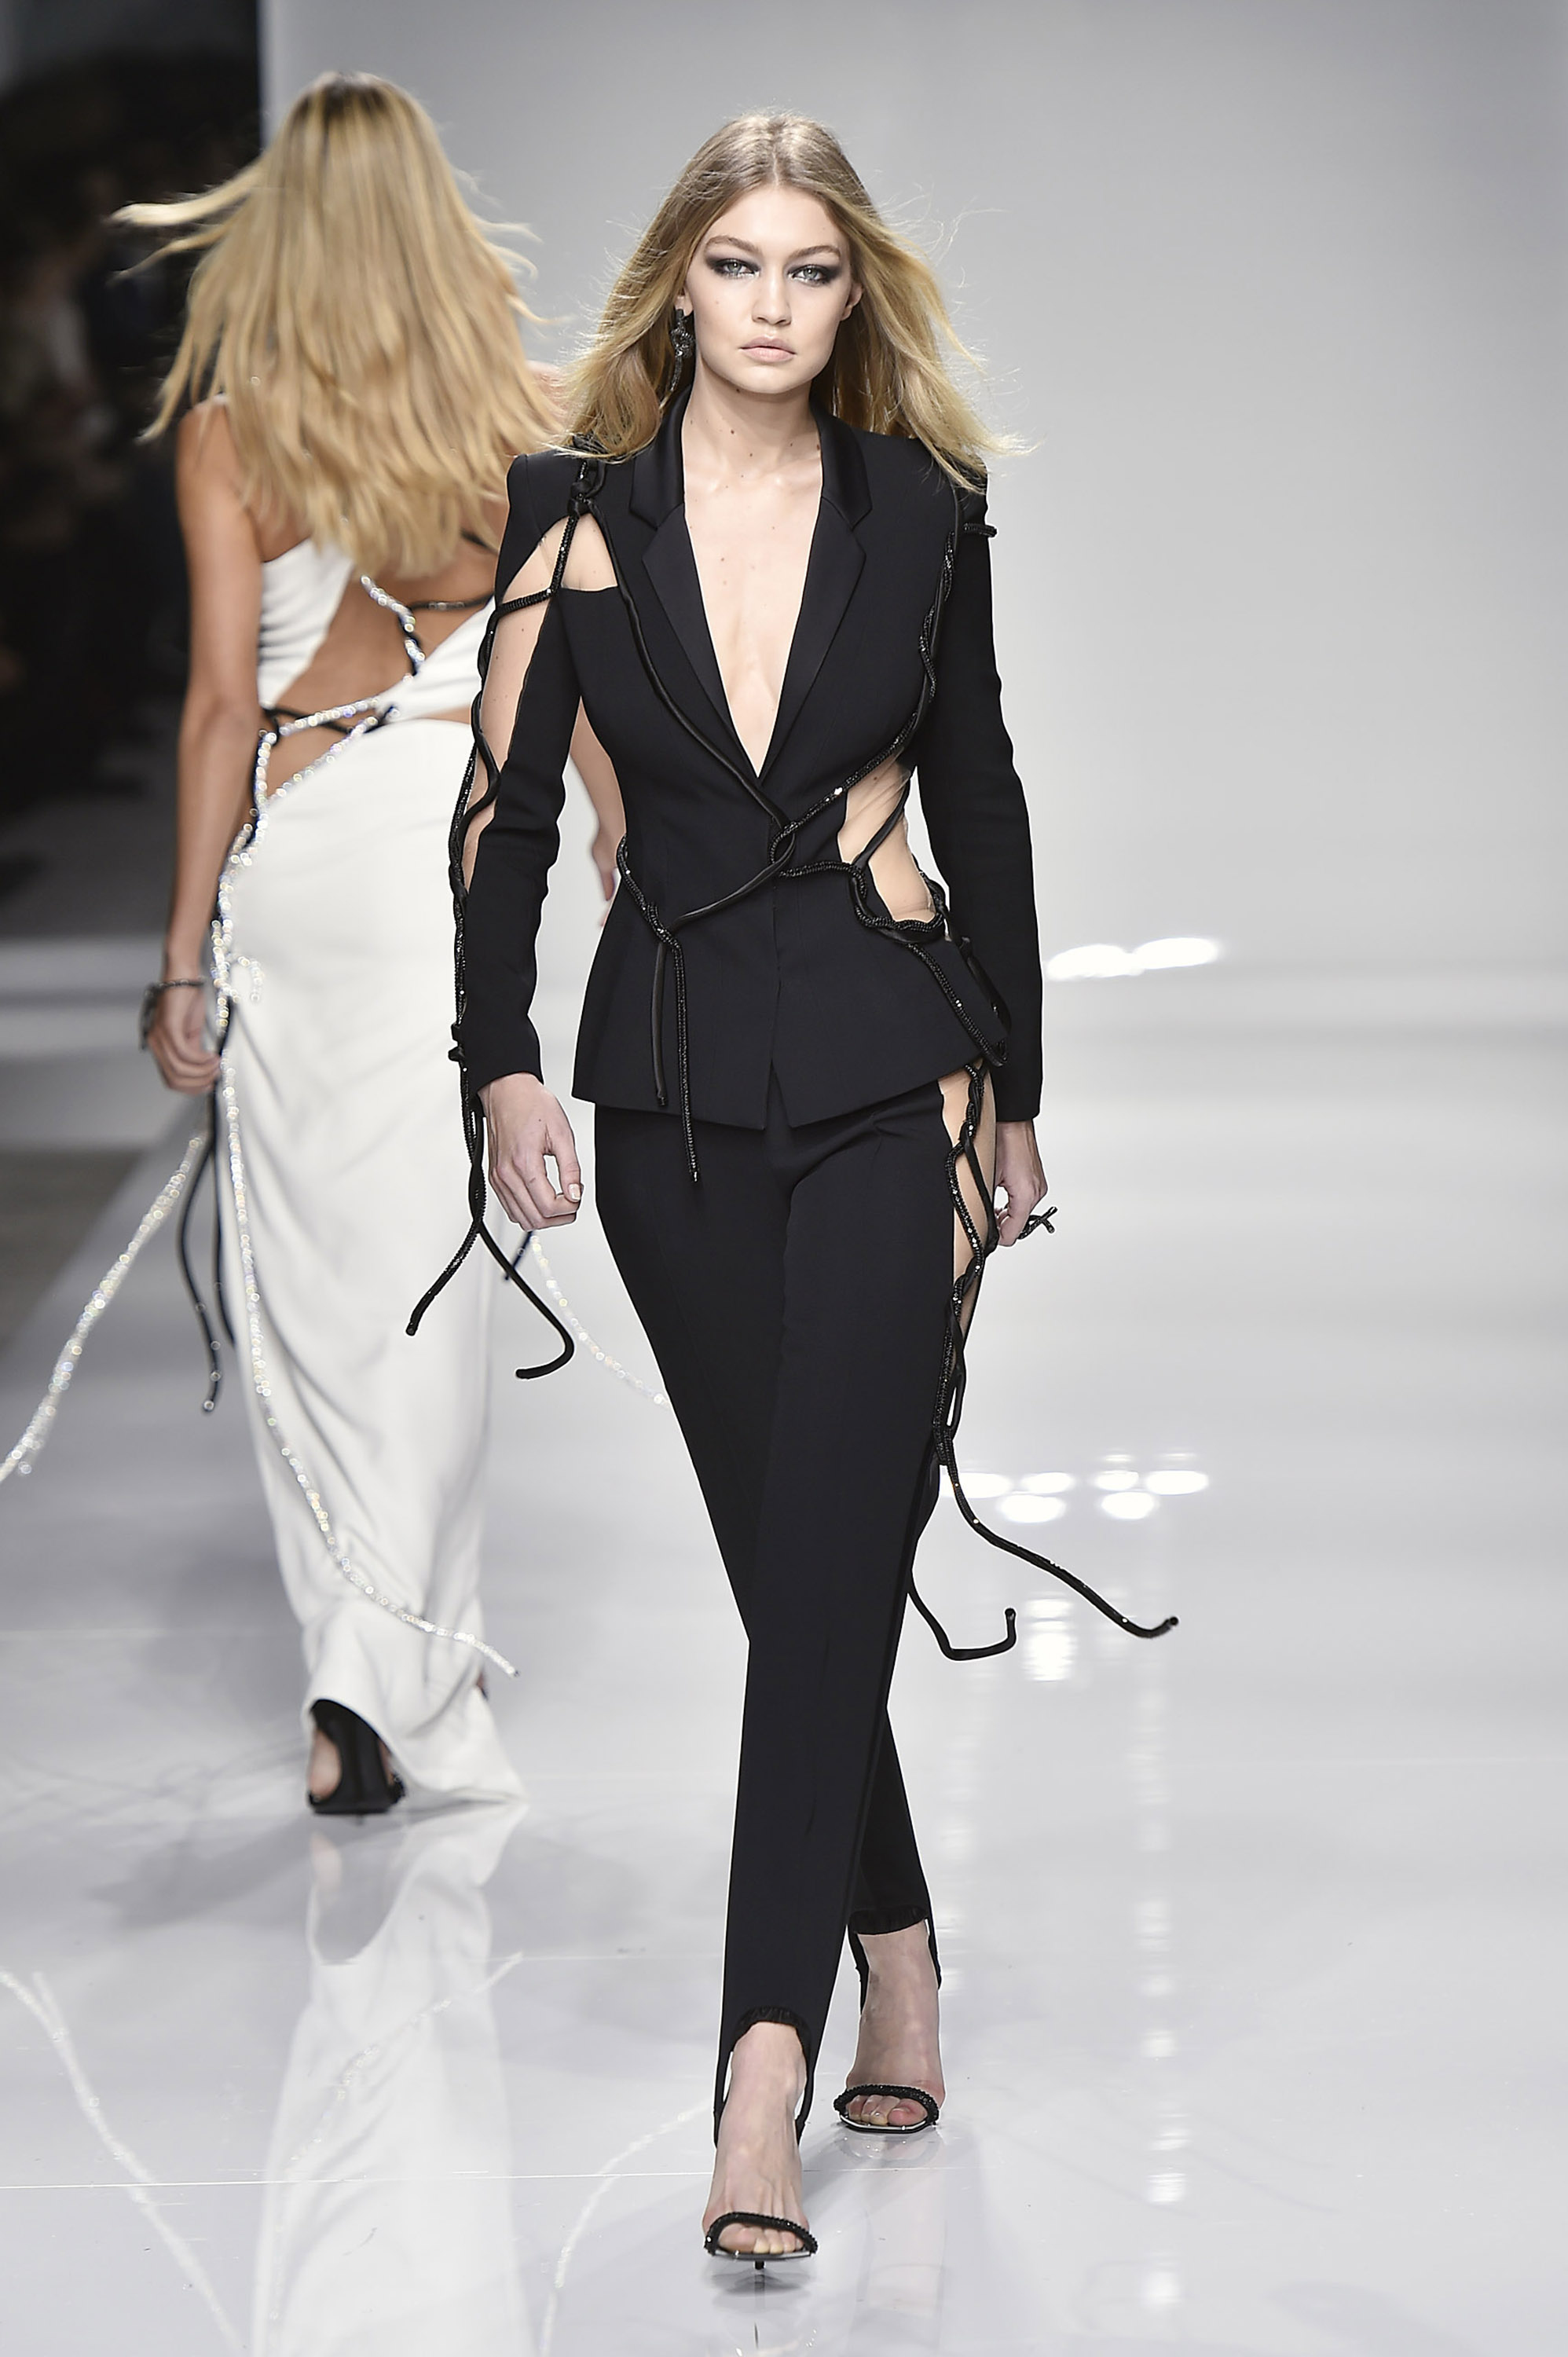 Atelier Versace - Spring Summer 2016 Runway - Paris Haute Couture Fashion Week